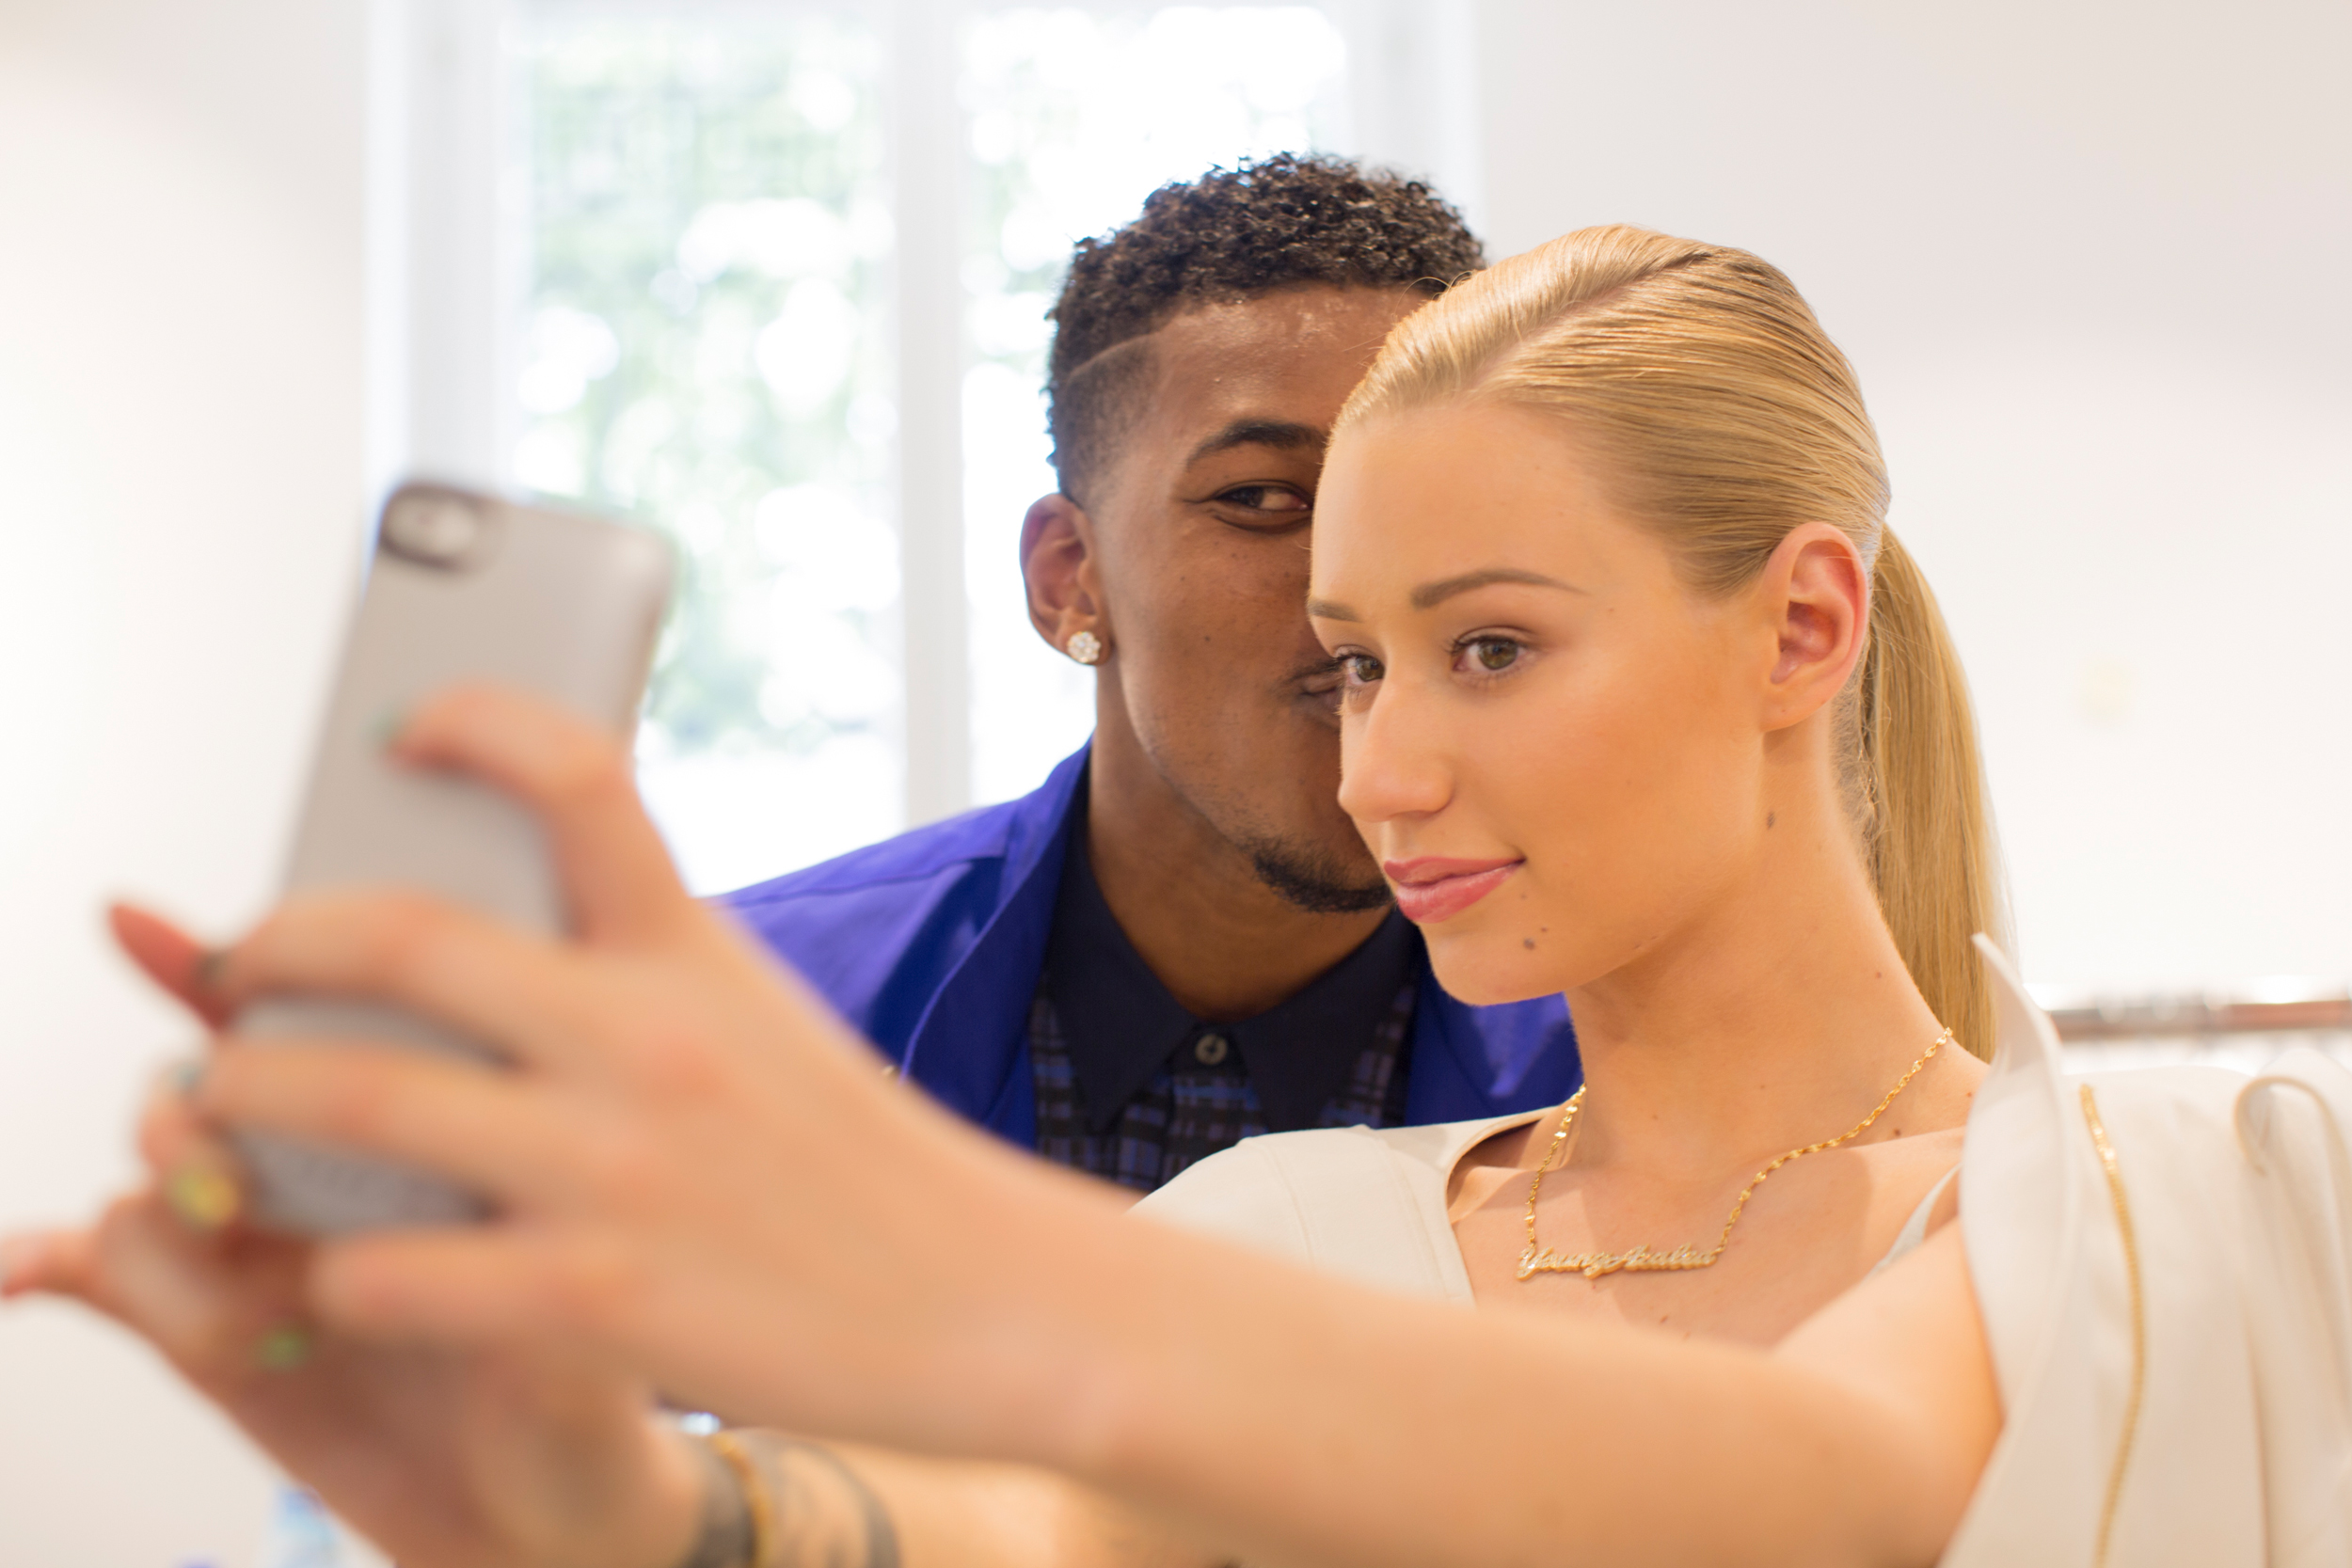 Nick Young and Iggy Azalea pose backstage during the Calvin Klein show as part of Milan Fashion Week Menswear Spring/Summer 2015 on June 22, 2014 in Milan, Italy.